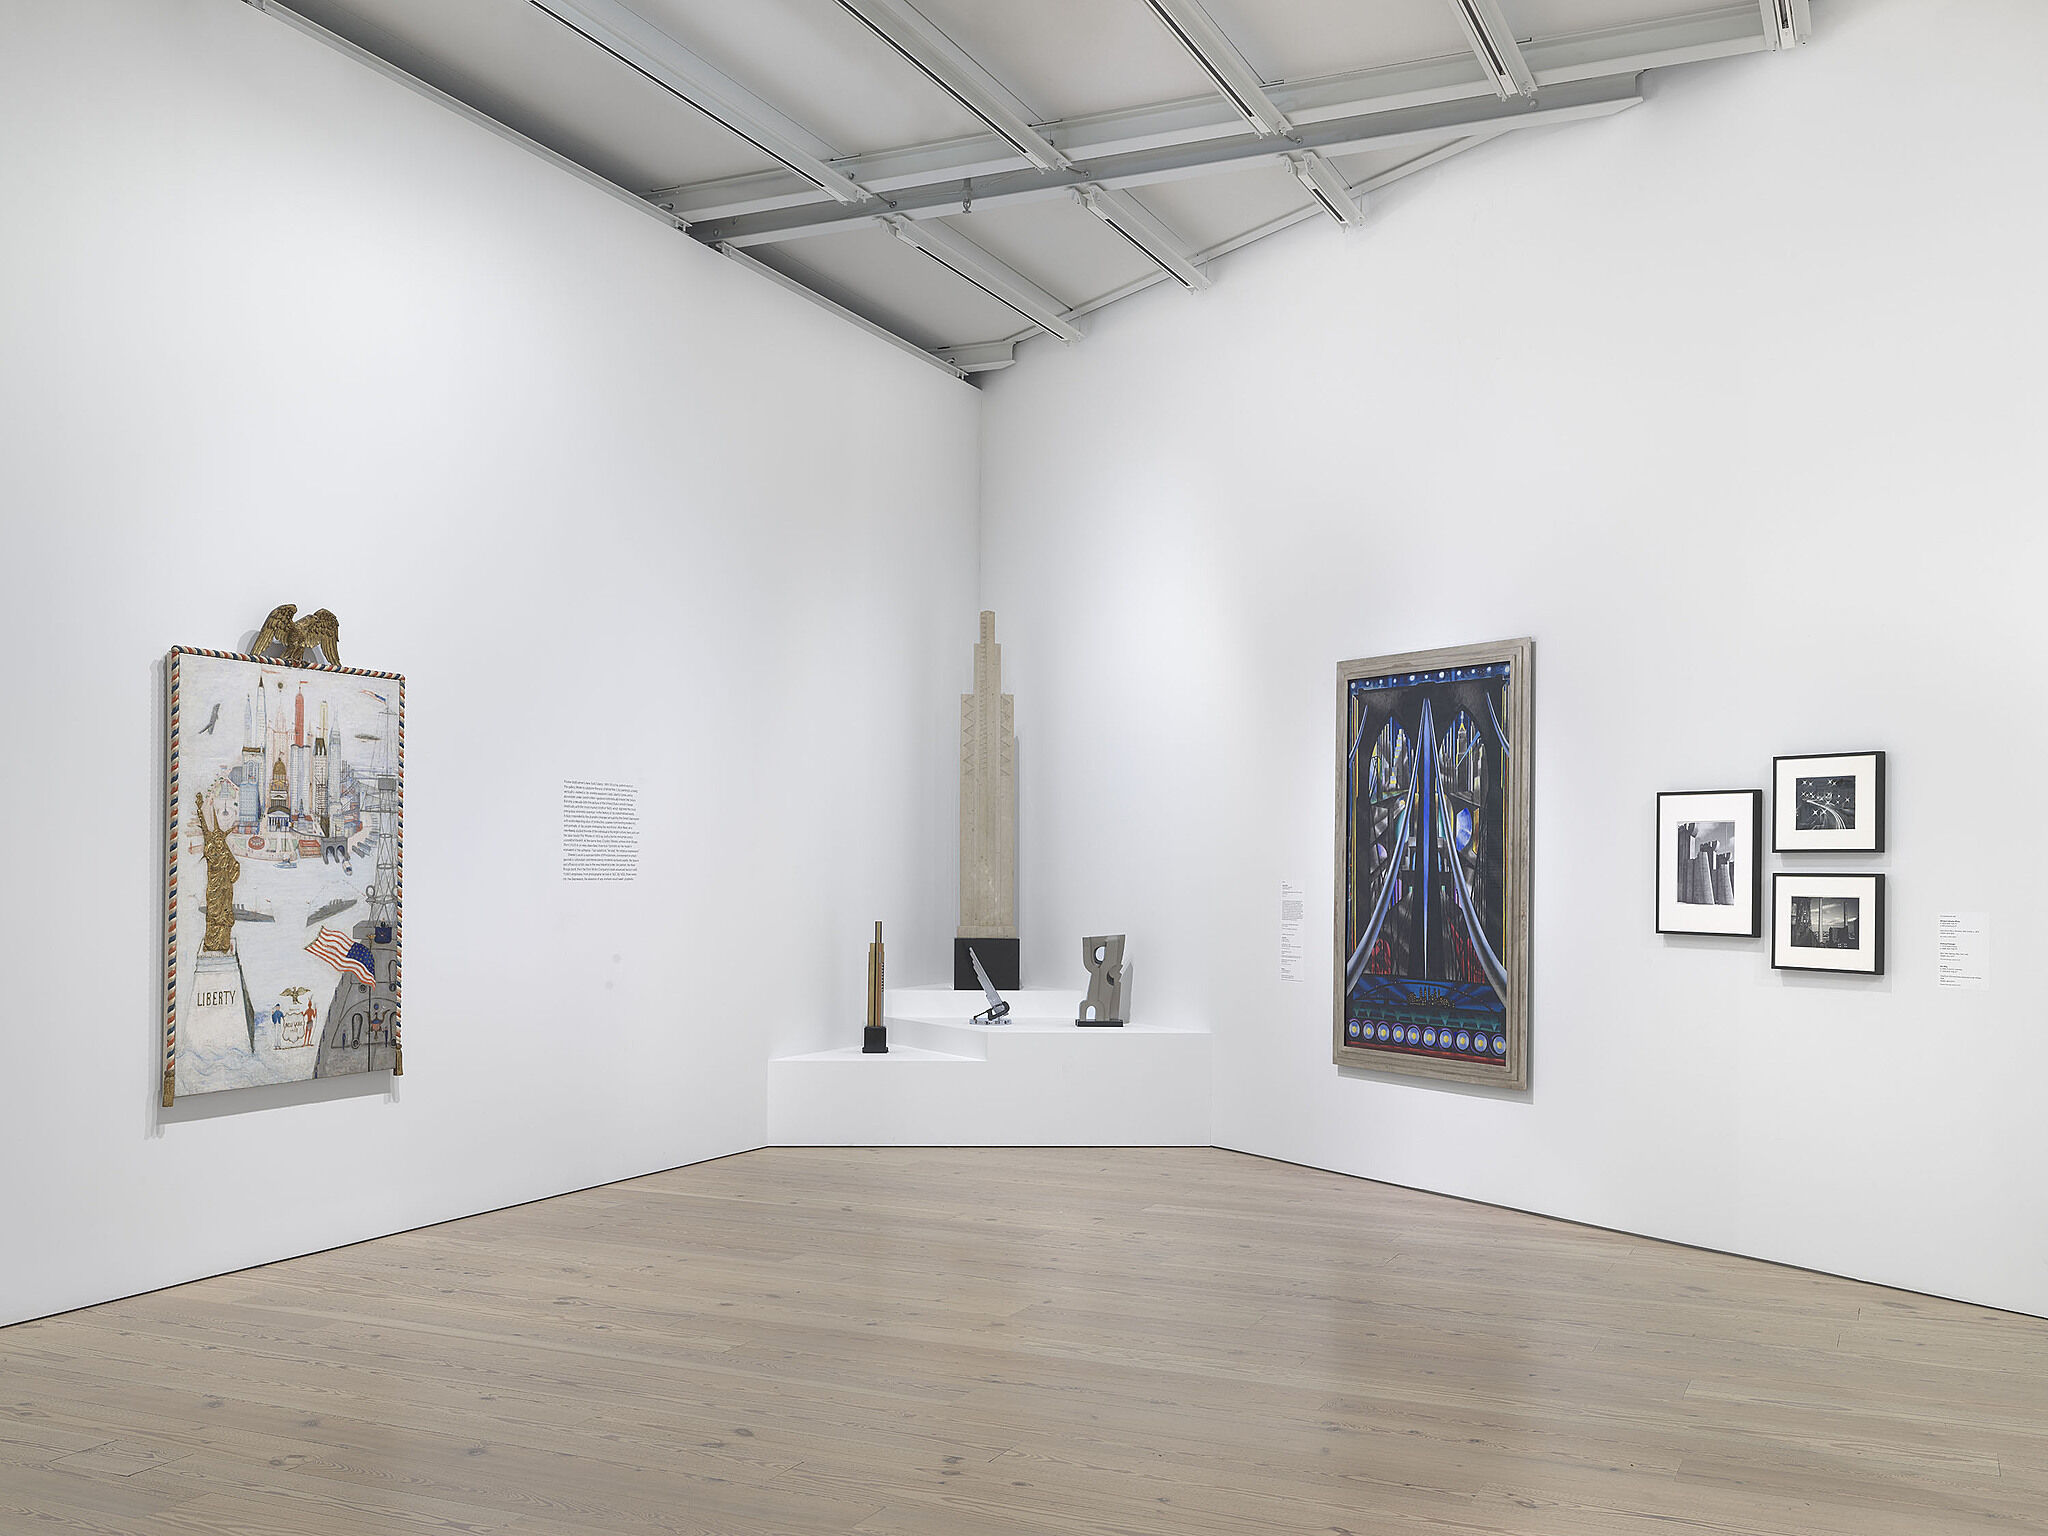 An image of the Whitney galleries with multiple sculptures in the corner